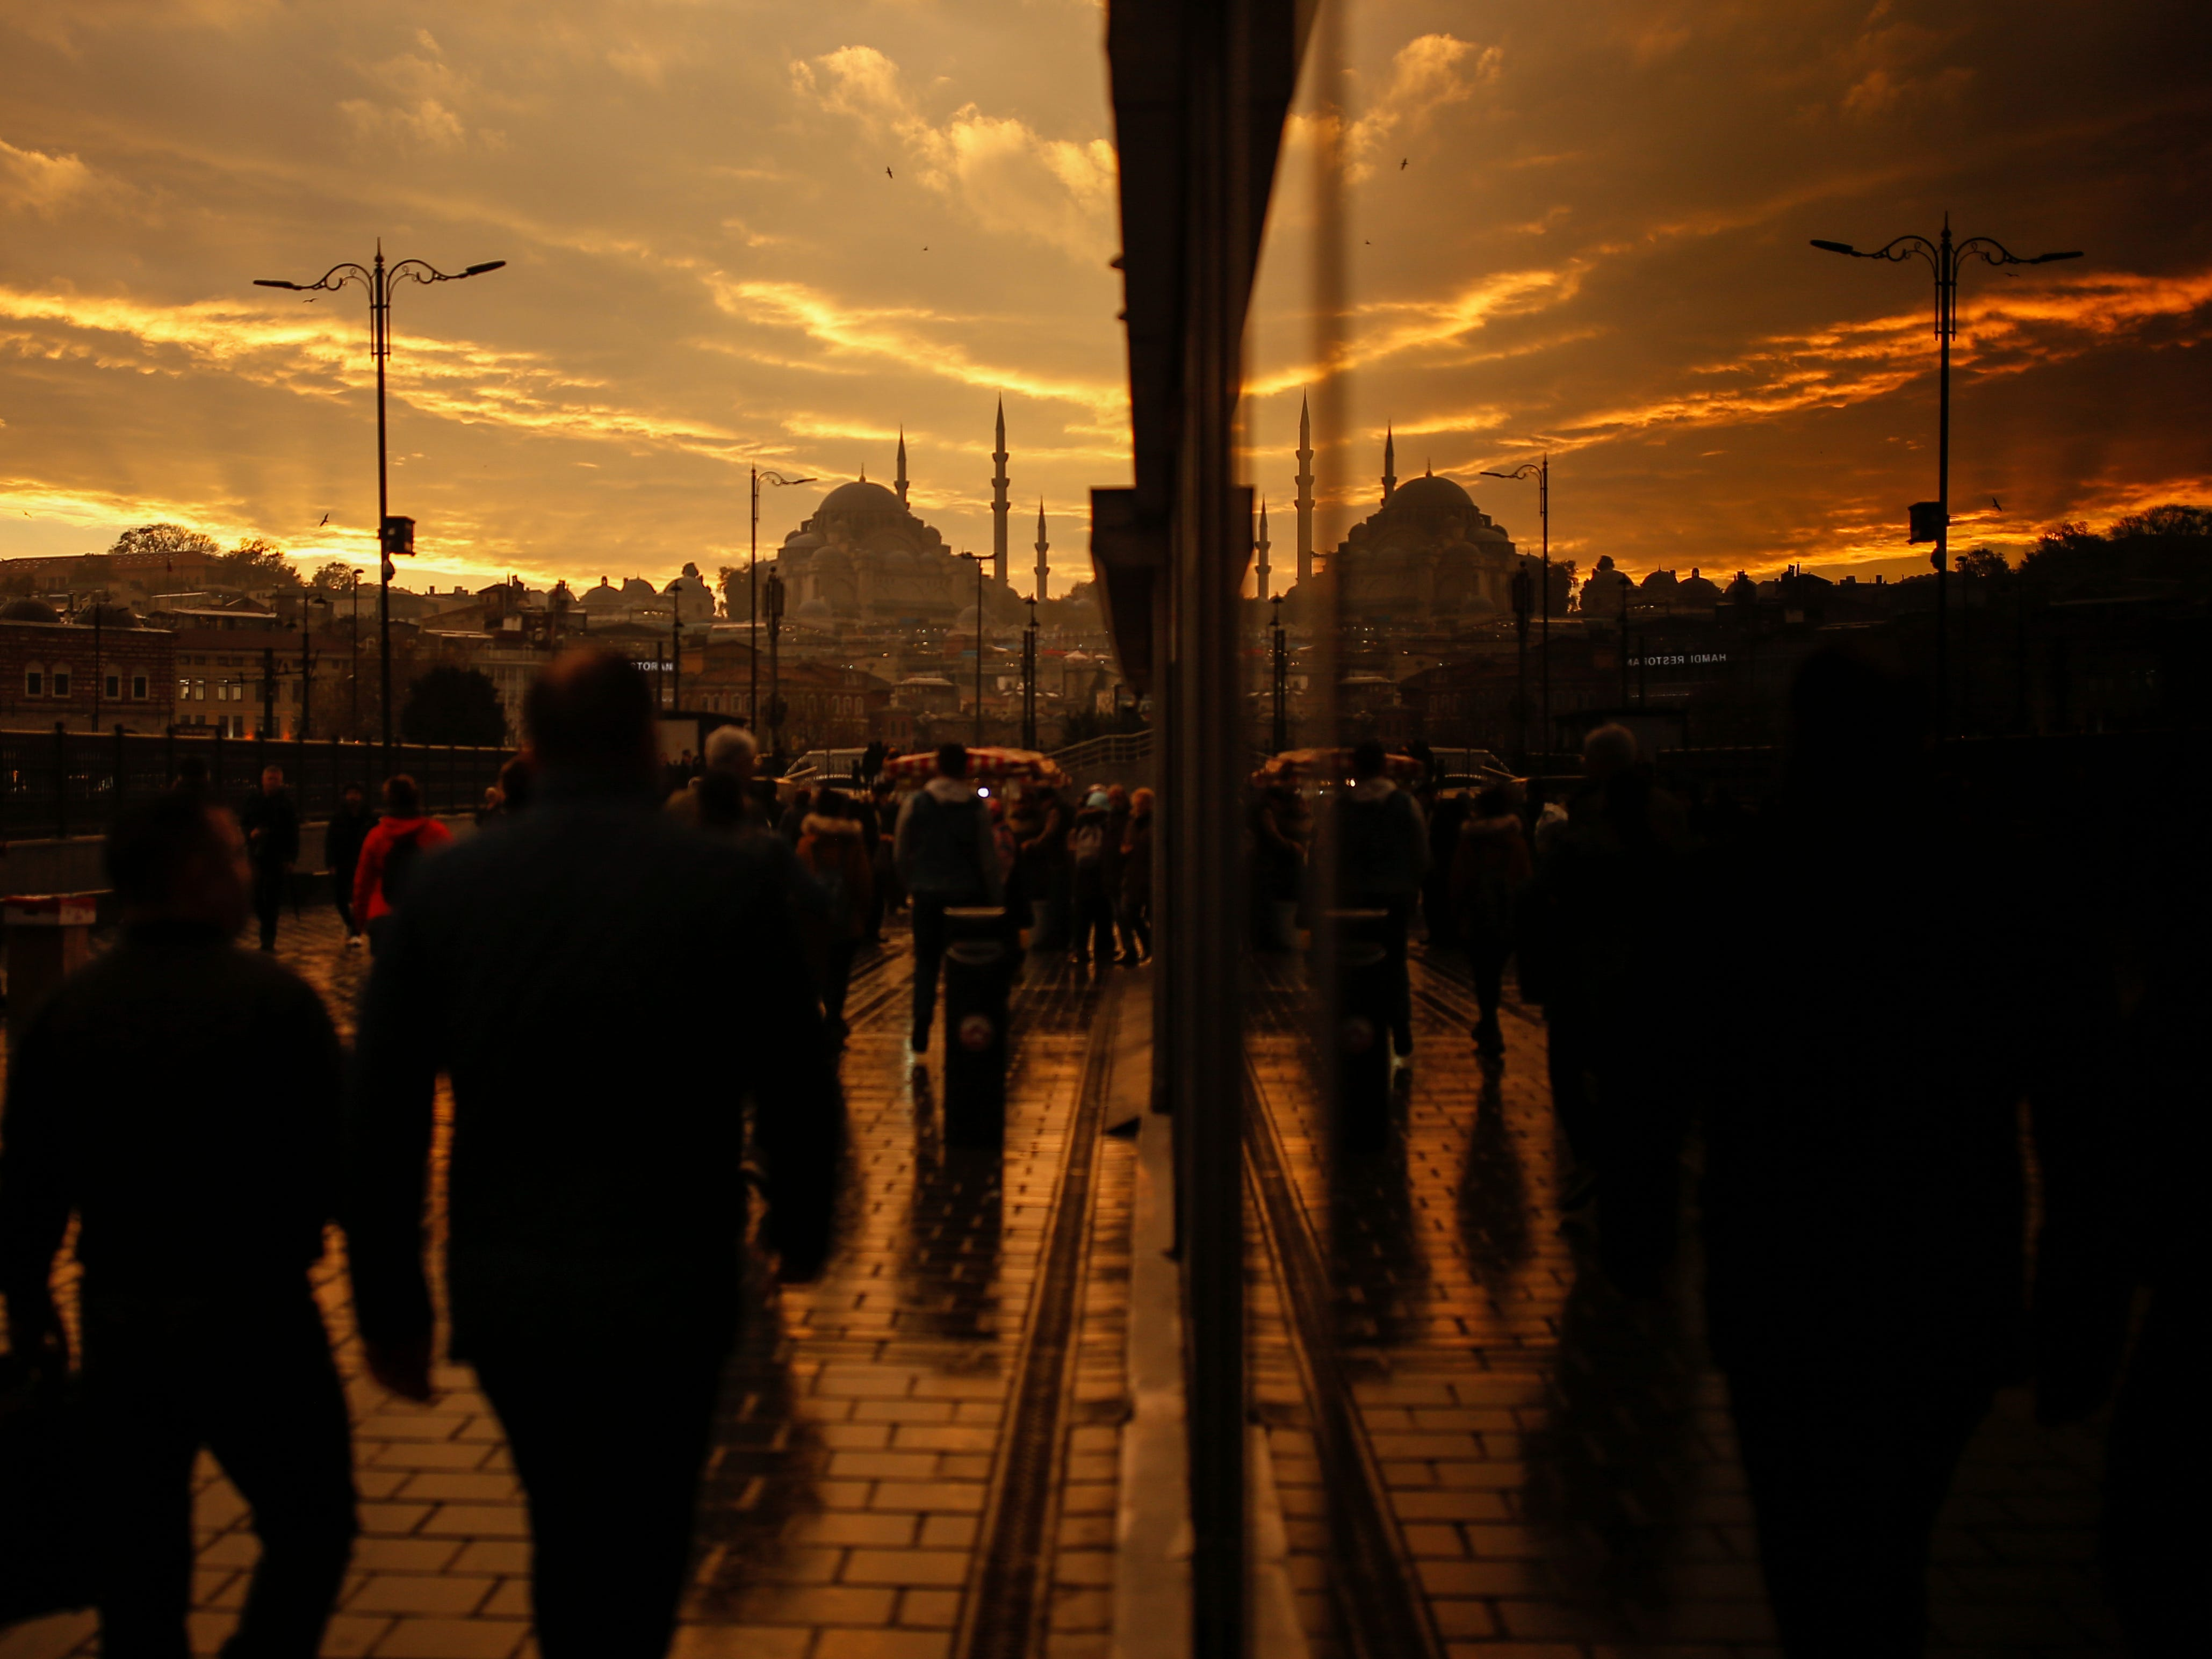 Backdropped by the iconic Suleymaniye Mosque in Istanbul, people are reflected in a glass as they walk on a bridge over the Golden Horn, Wednesday, Nov. 21, 2018.